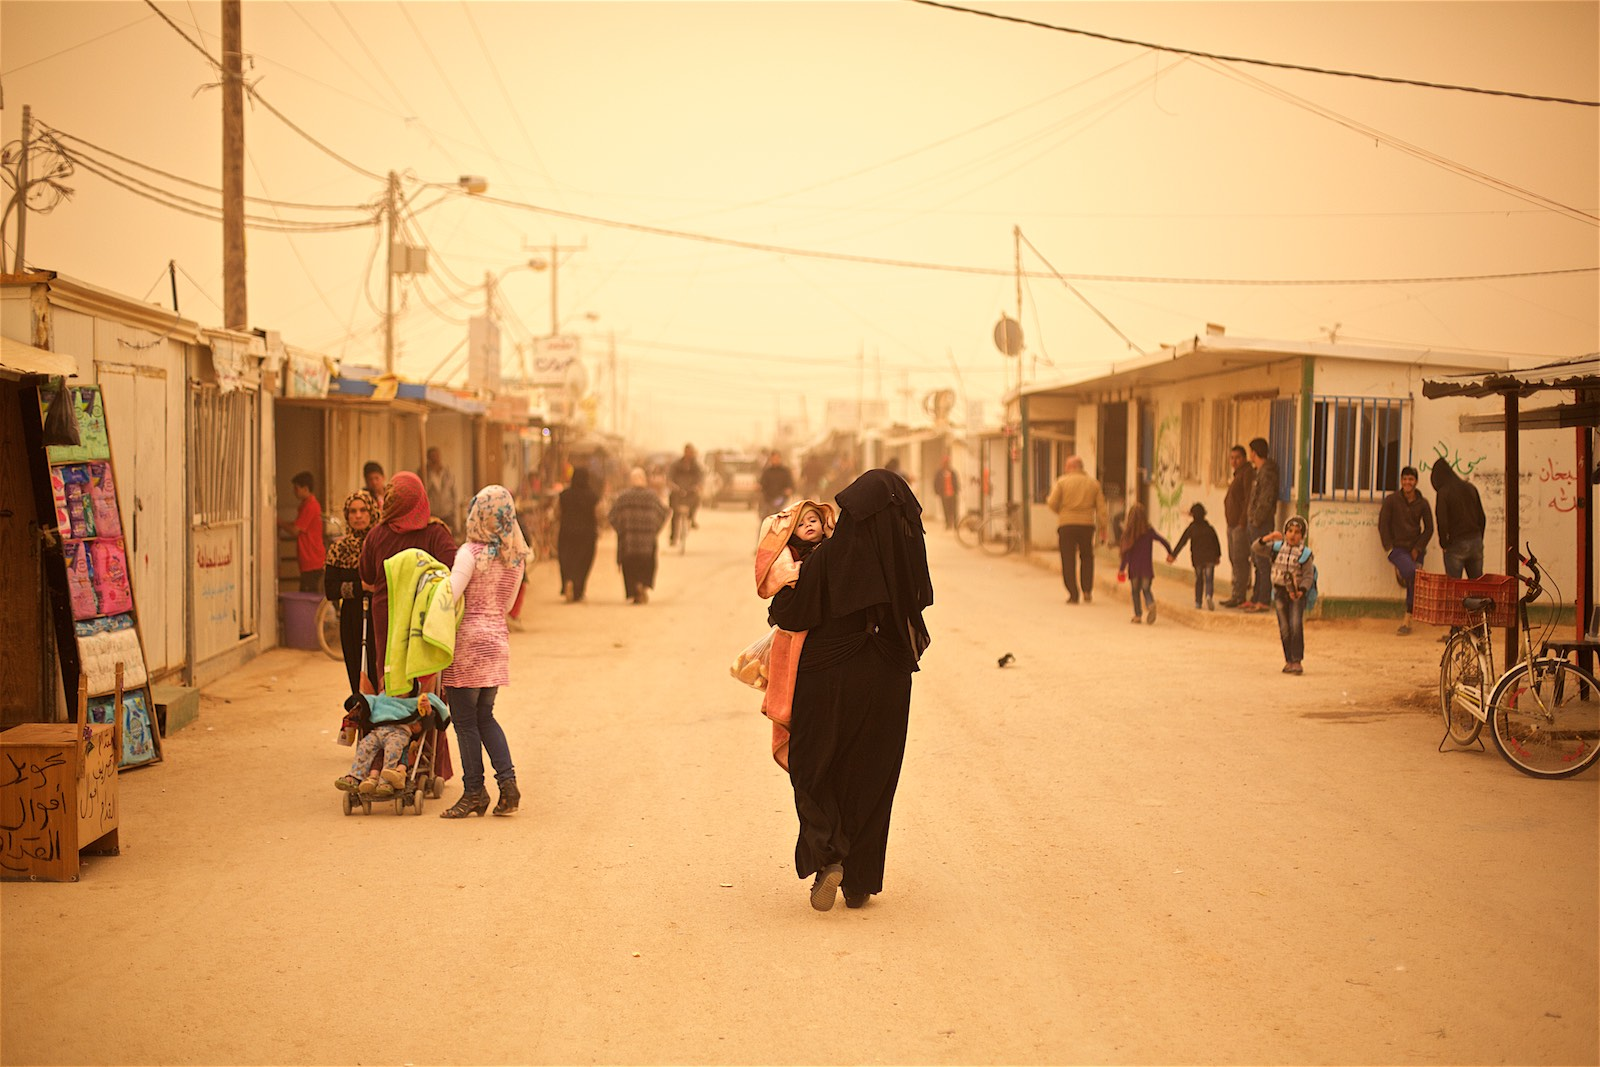 The weather situation in Zaatari is difficult for everyone, but especially for the little children who often suffer from lung-related diseases due to the frequent sand storms and the ever-present dust.(photo: Denis Bosnic)